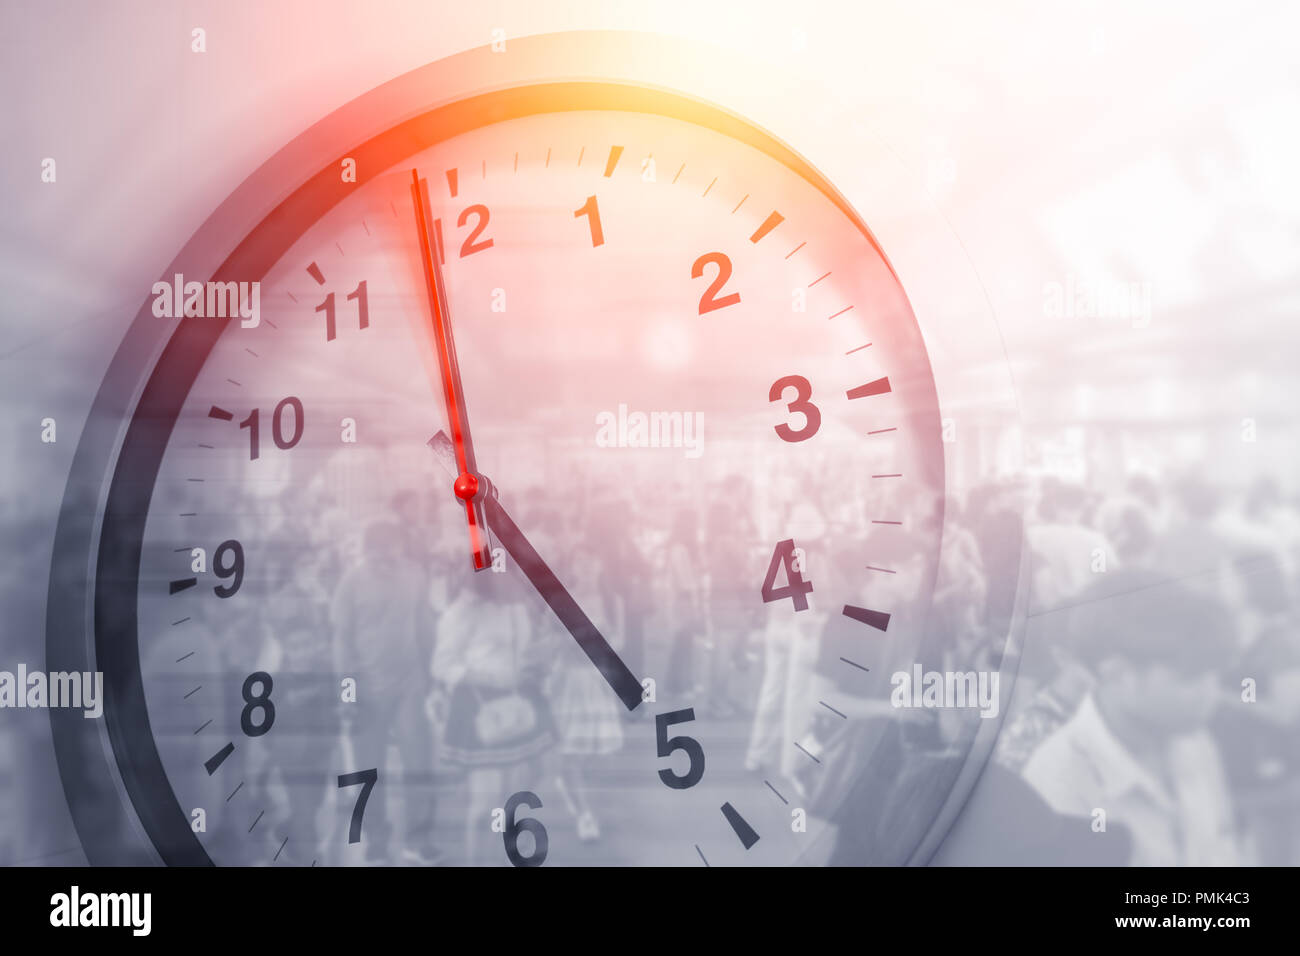 Business times hours concept people crowded walking overlay with time clock Stock Photo